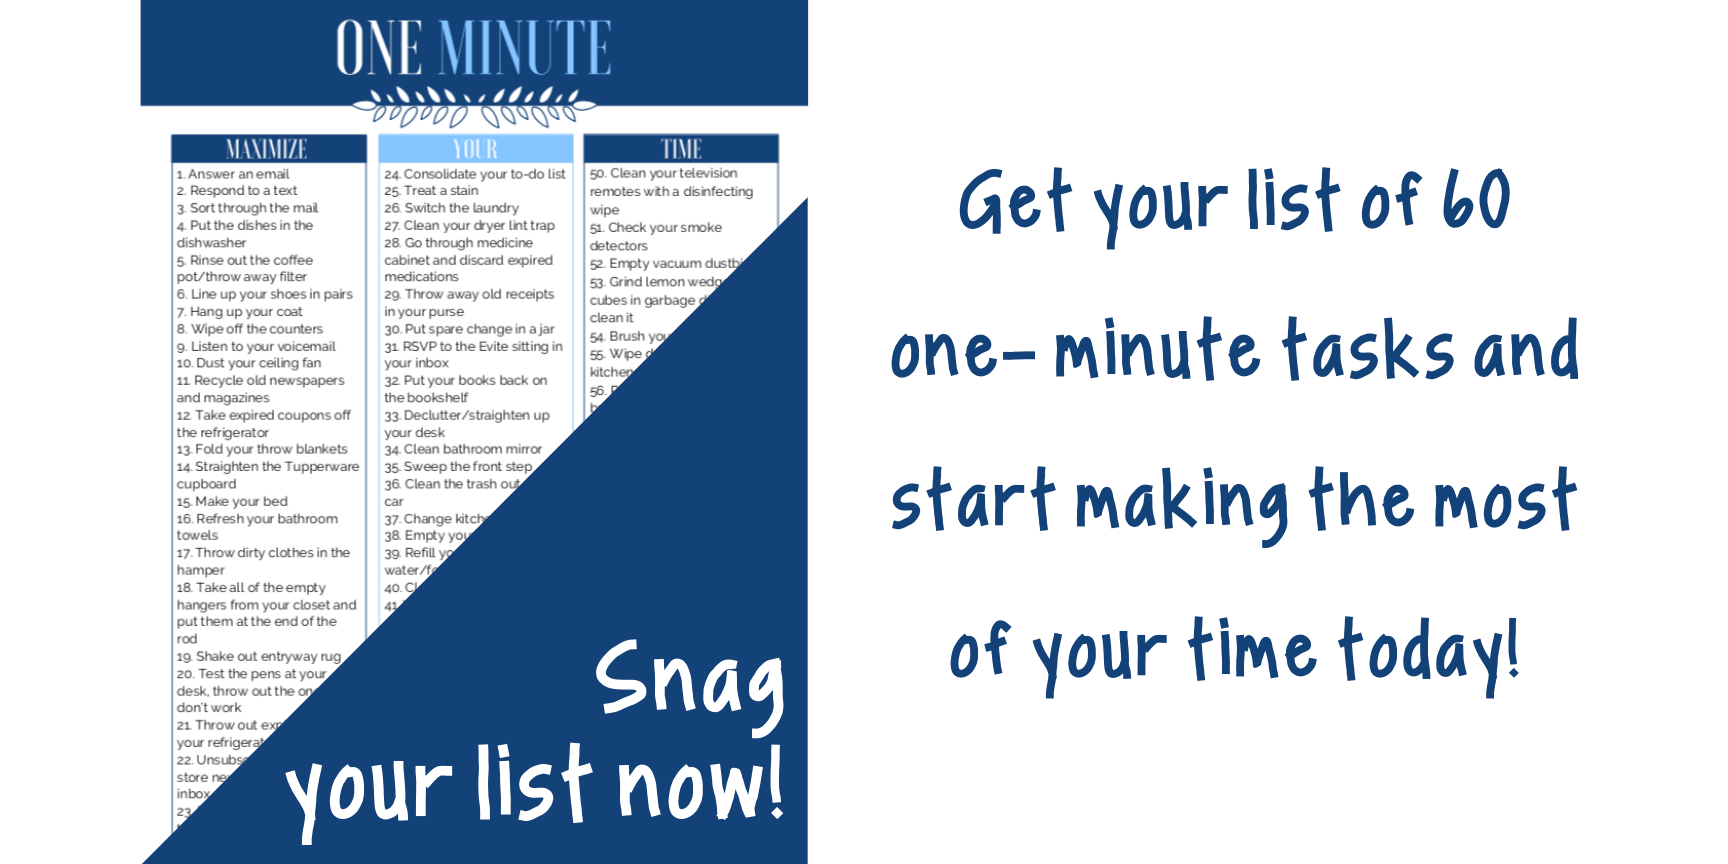 Grab your list of one-minute tasks now!